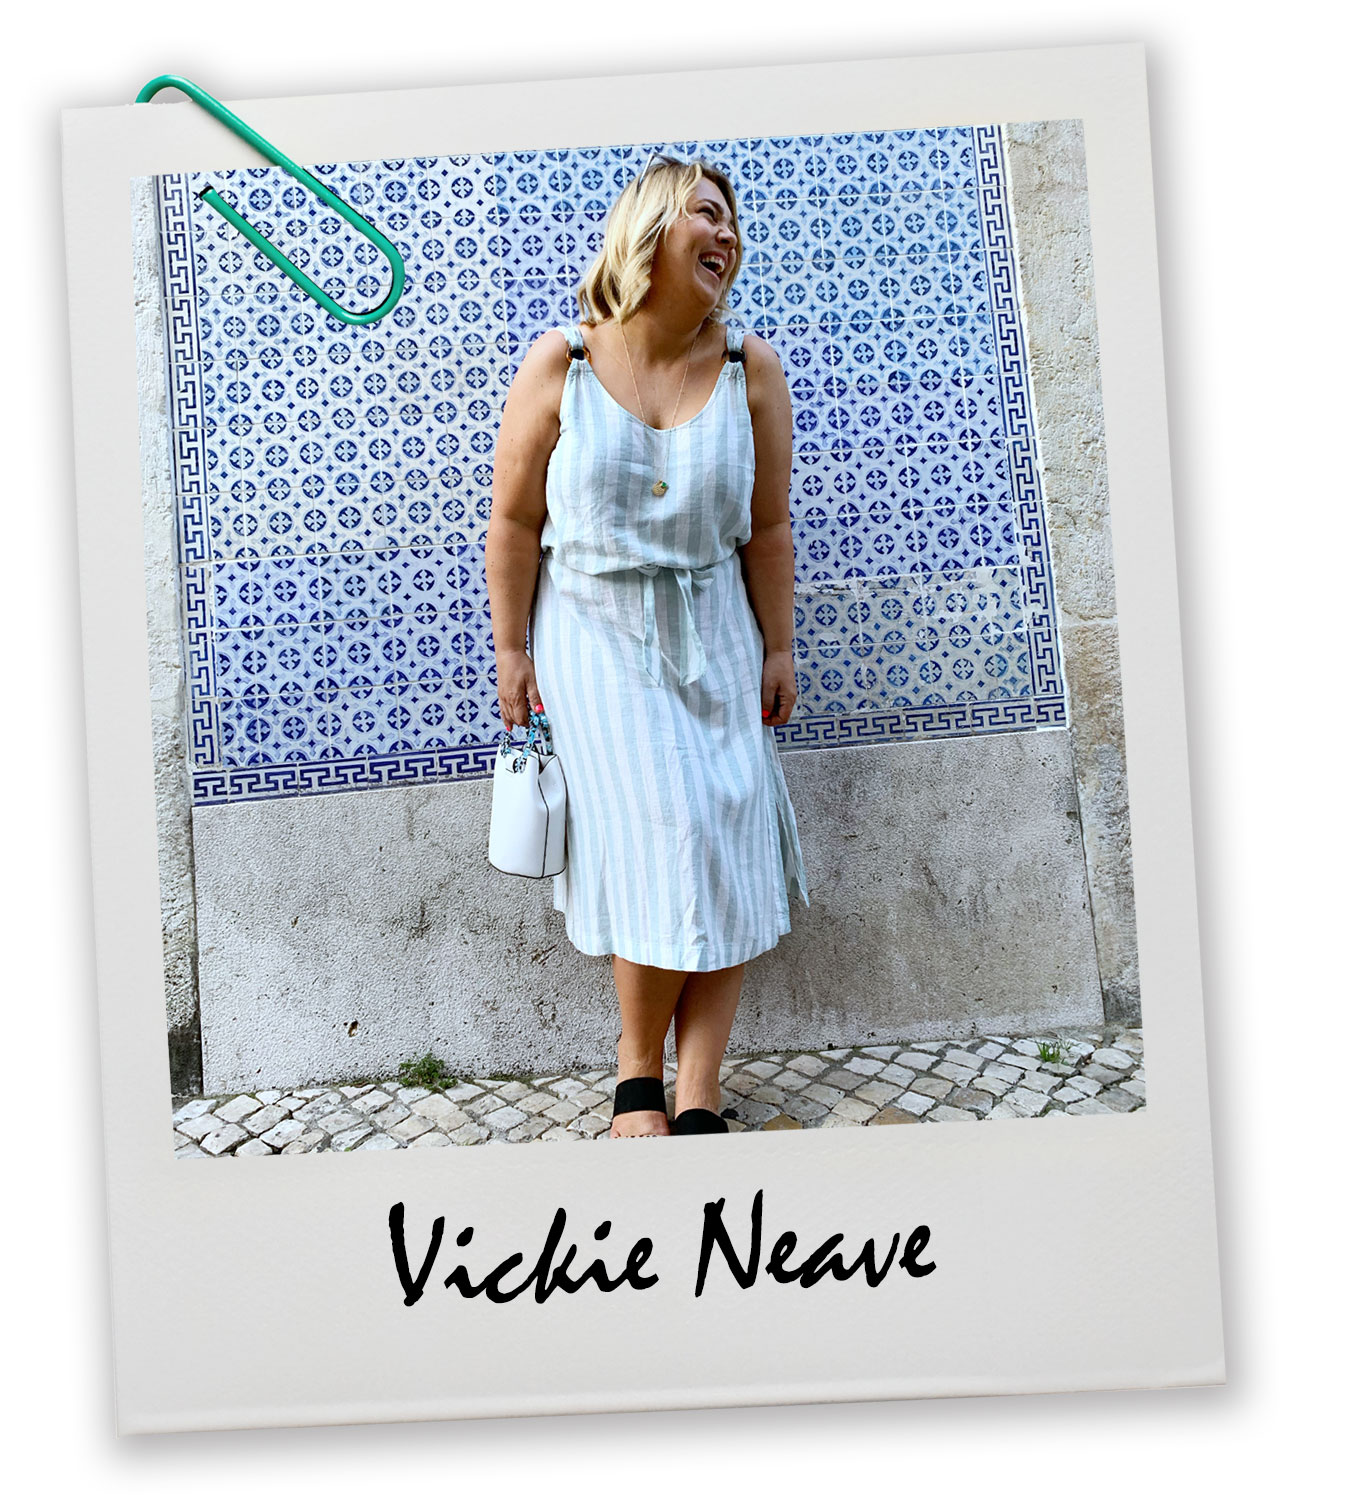 About Me, Vickie Neave